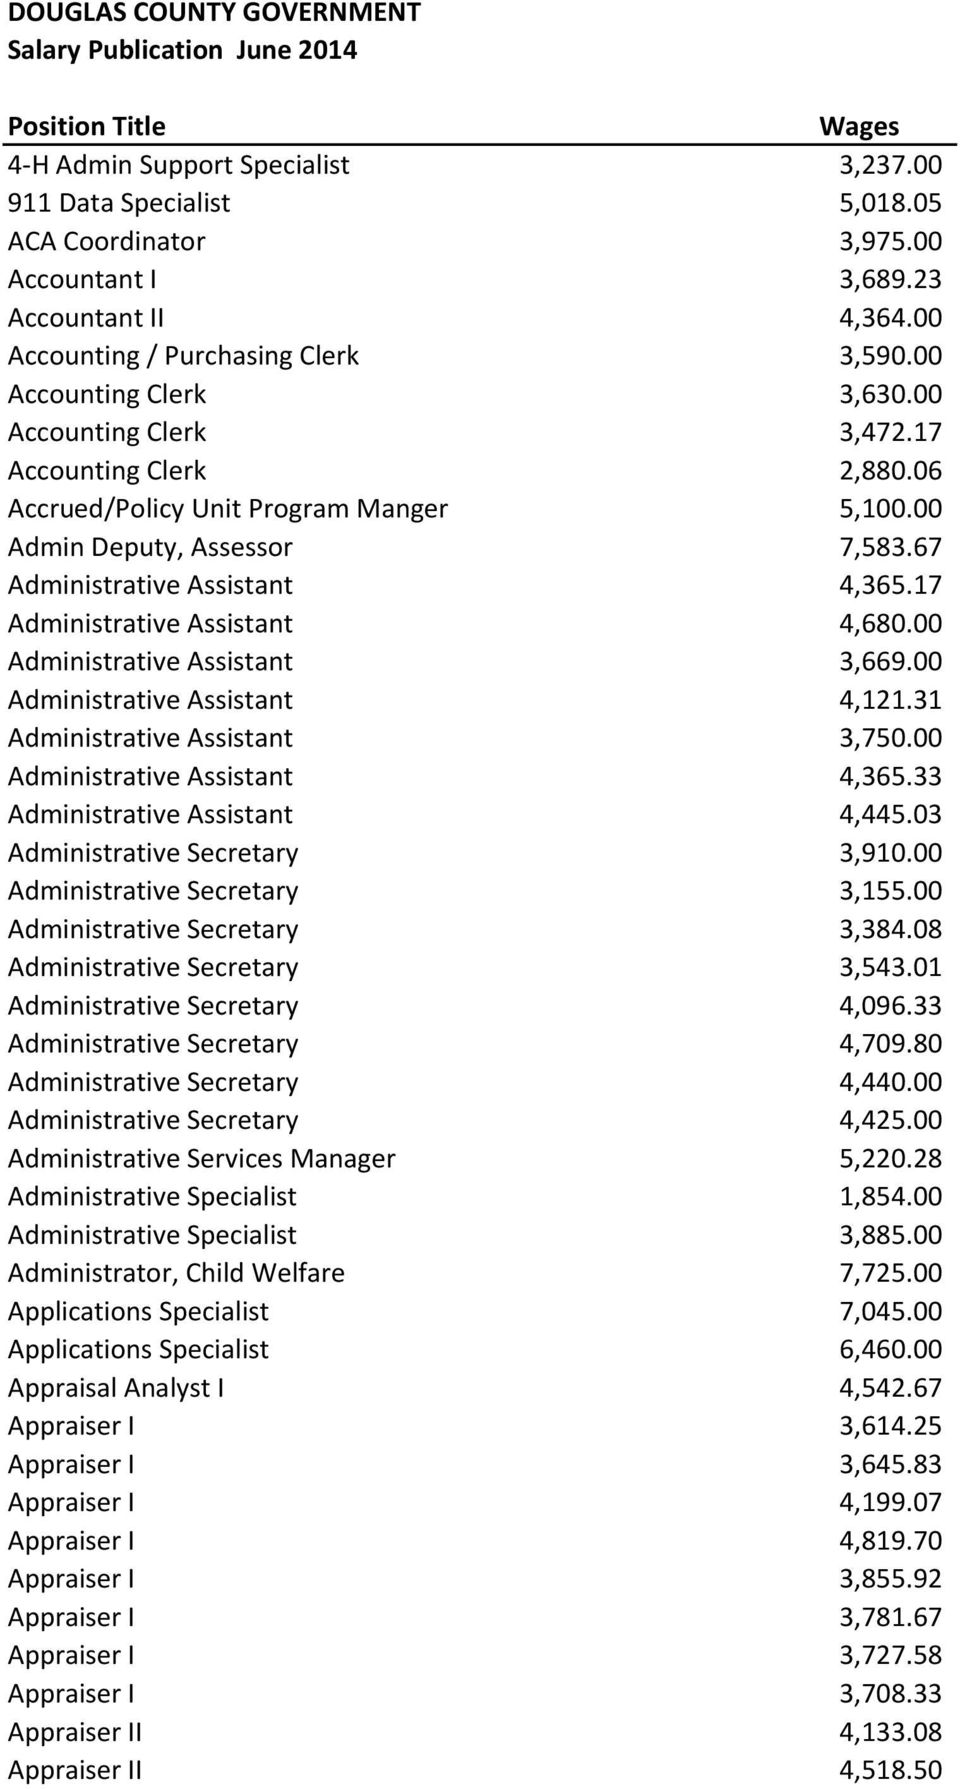 00 Administrative Assistant 3,669.00 Administrative Assistant 4,121.31 Administrative Assistant 3,750.00 Administrative Assistant 4,365.33 Administrative Assistant 4,445.